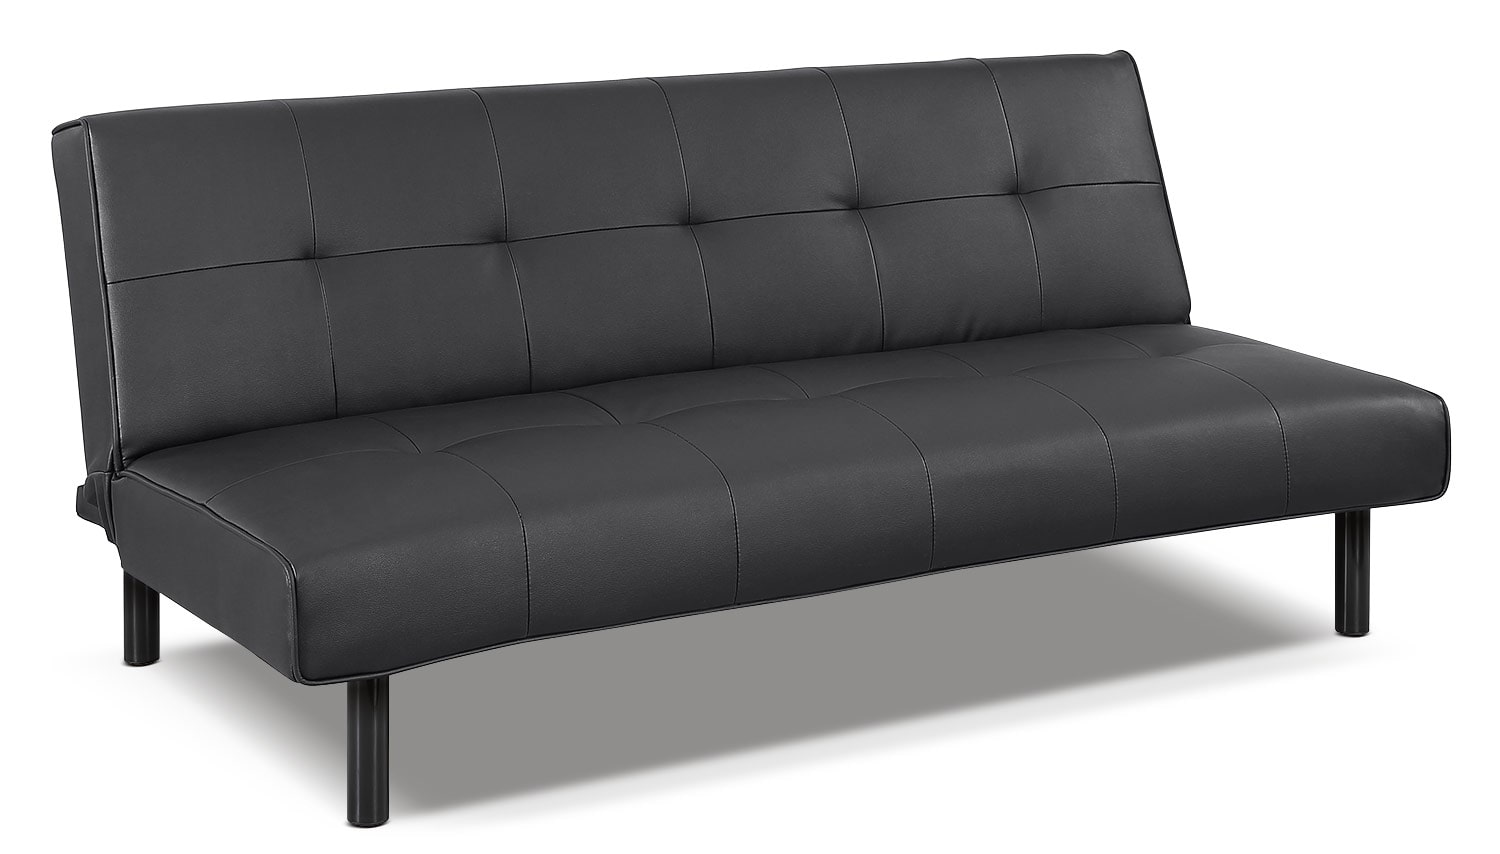 Living Room Furniture - Xoom Convertible Sofa